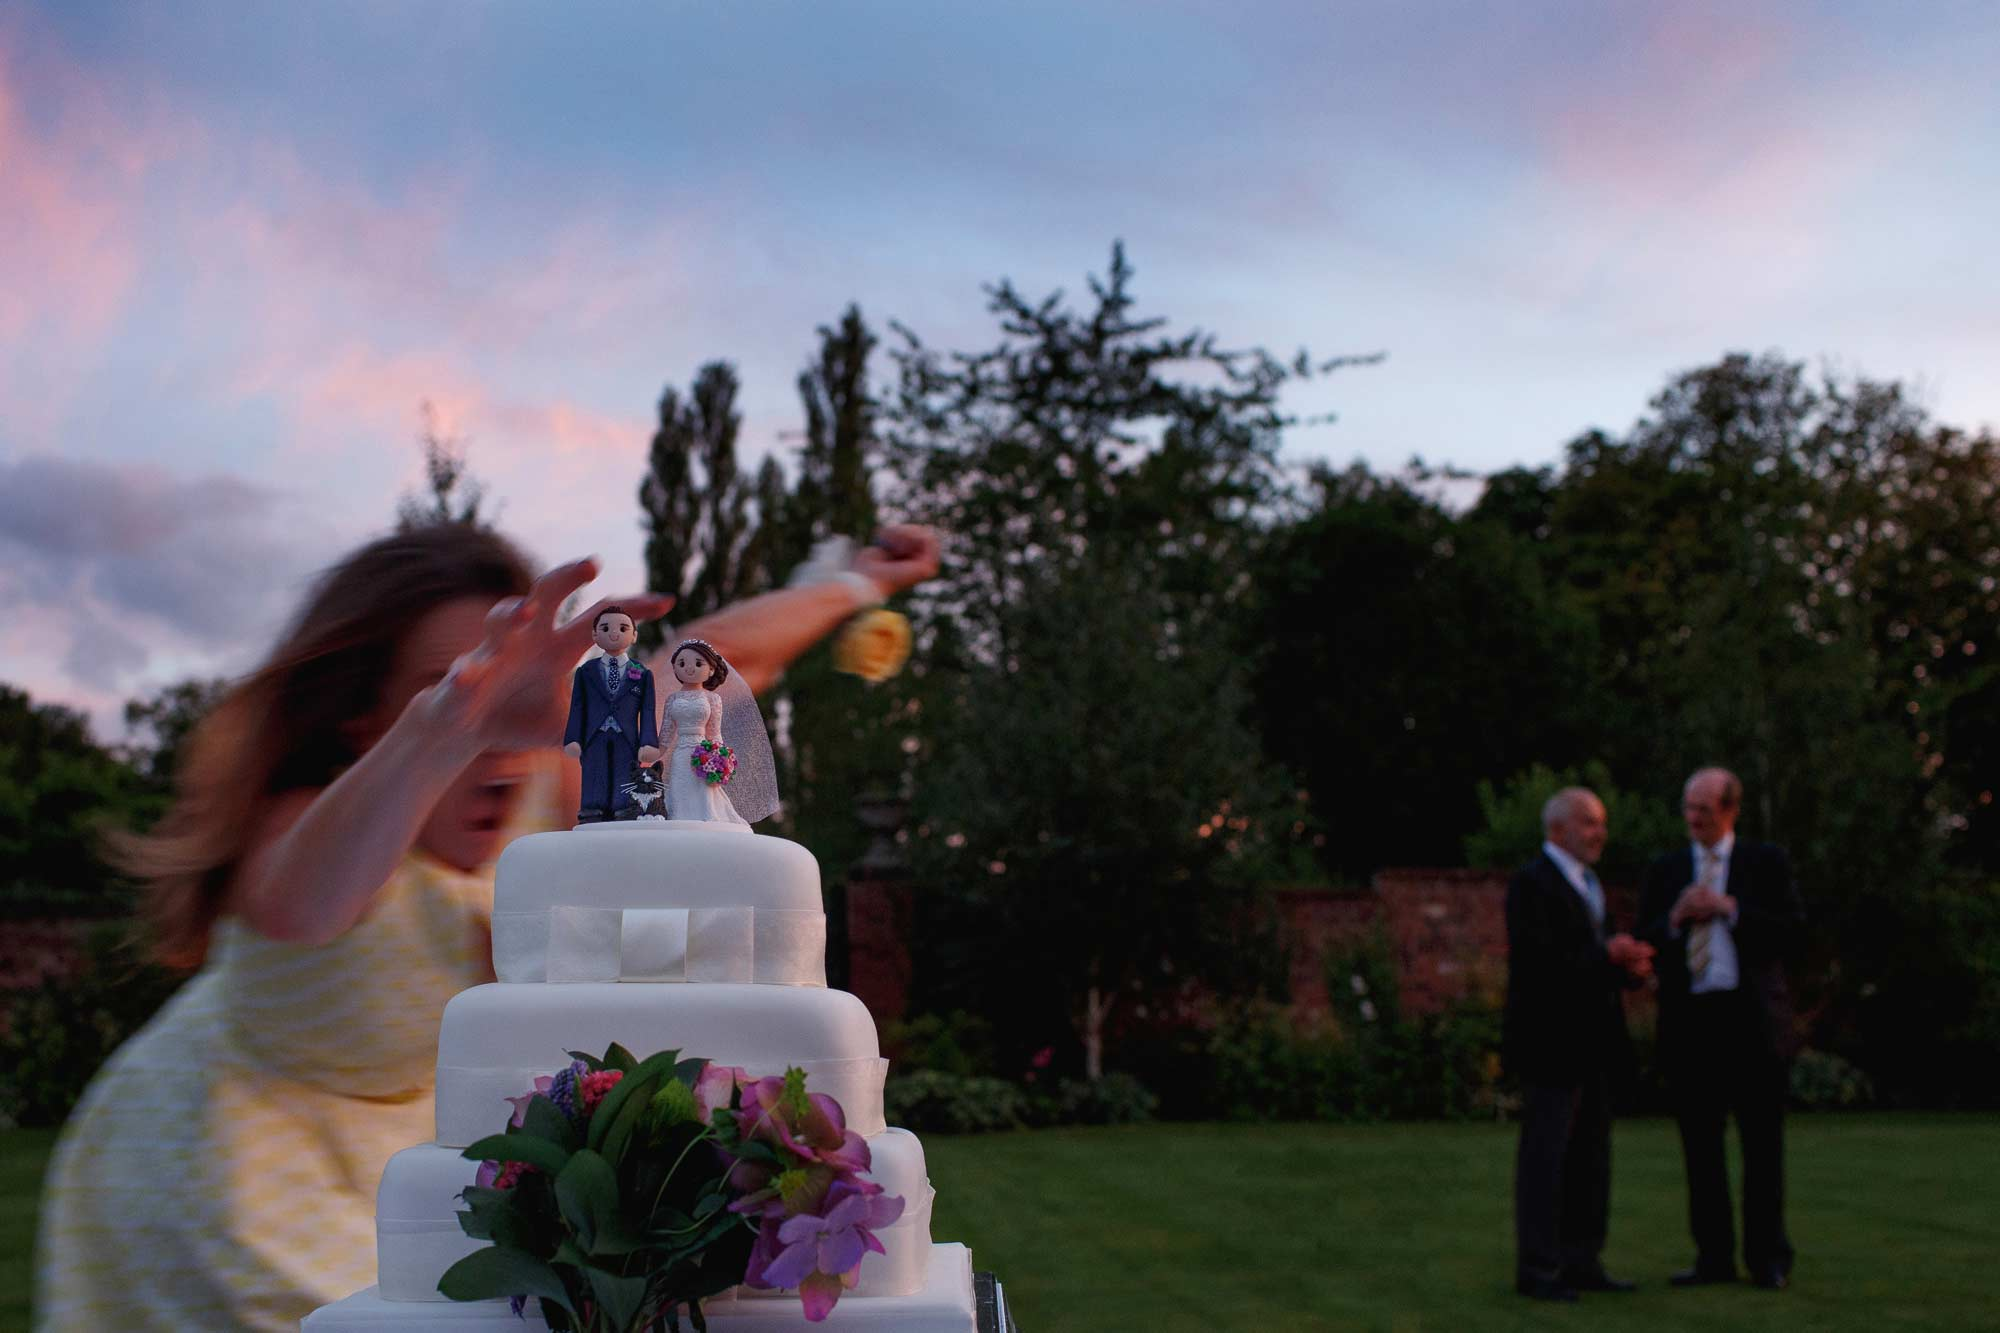 award wining wedding photograph of a wedding cake almost being knocked over